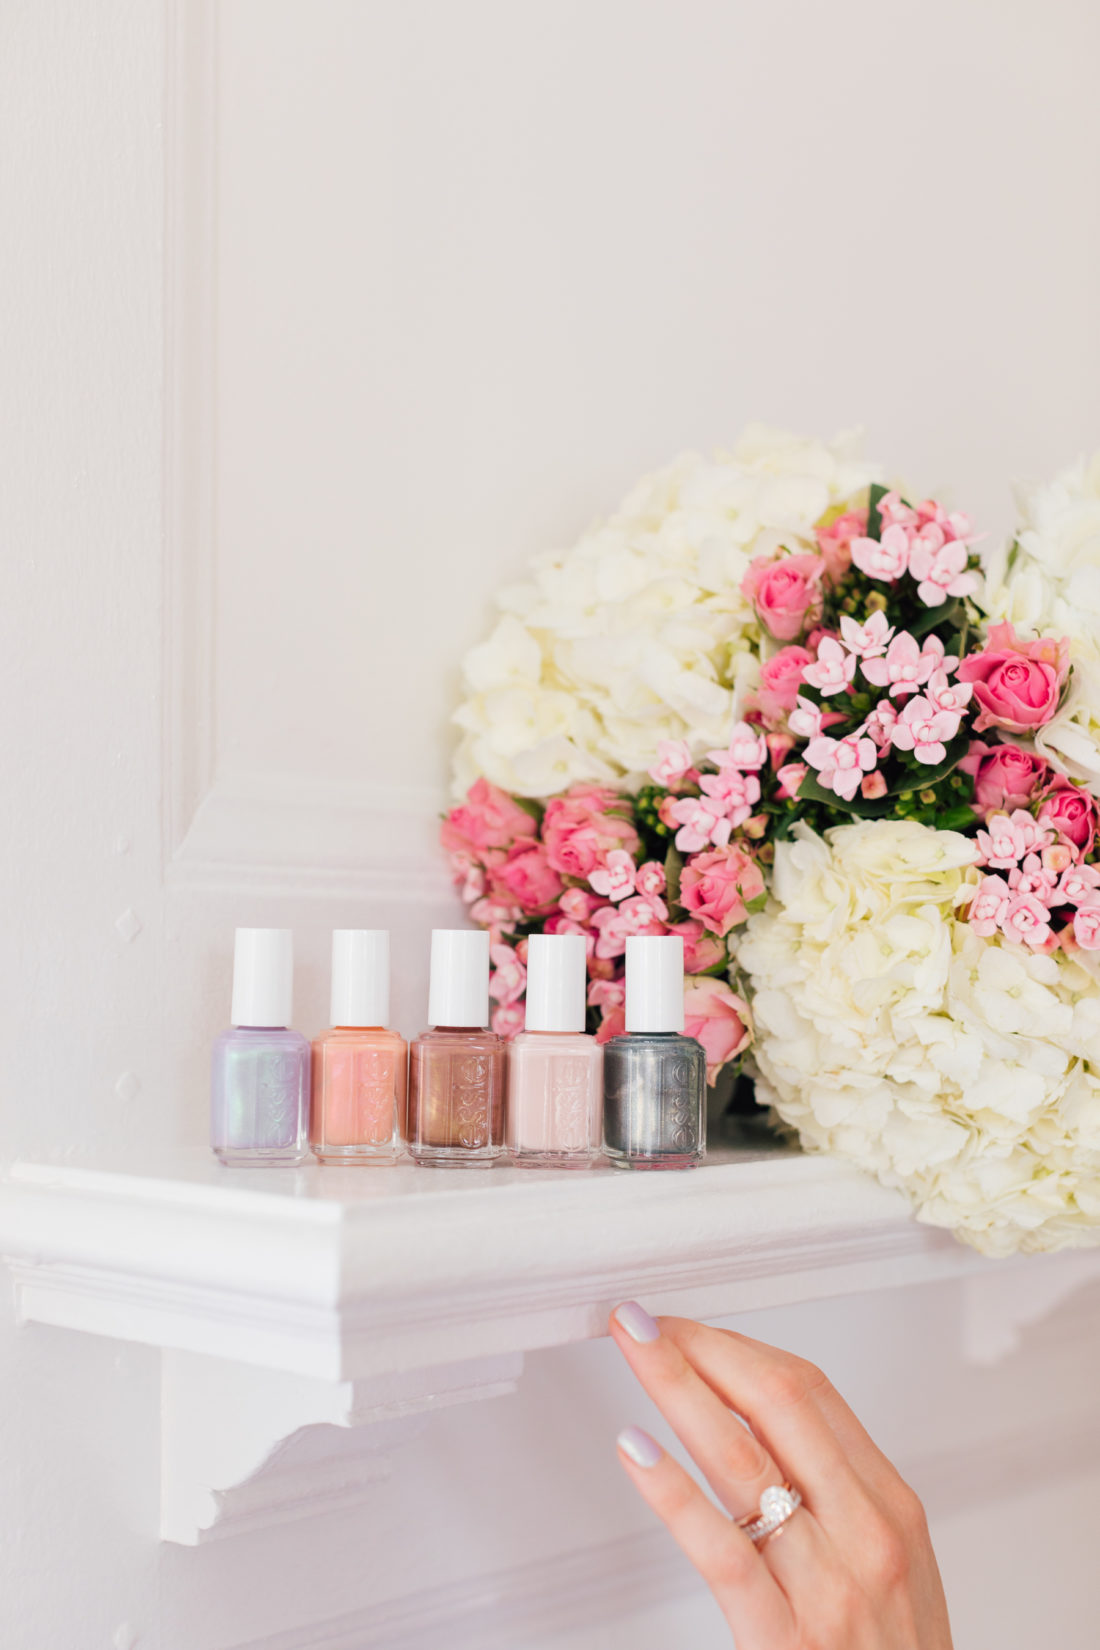 Eva Amurri Martino shares her favorite Essie nail polish colors from their Spring 2019 collection